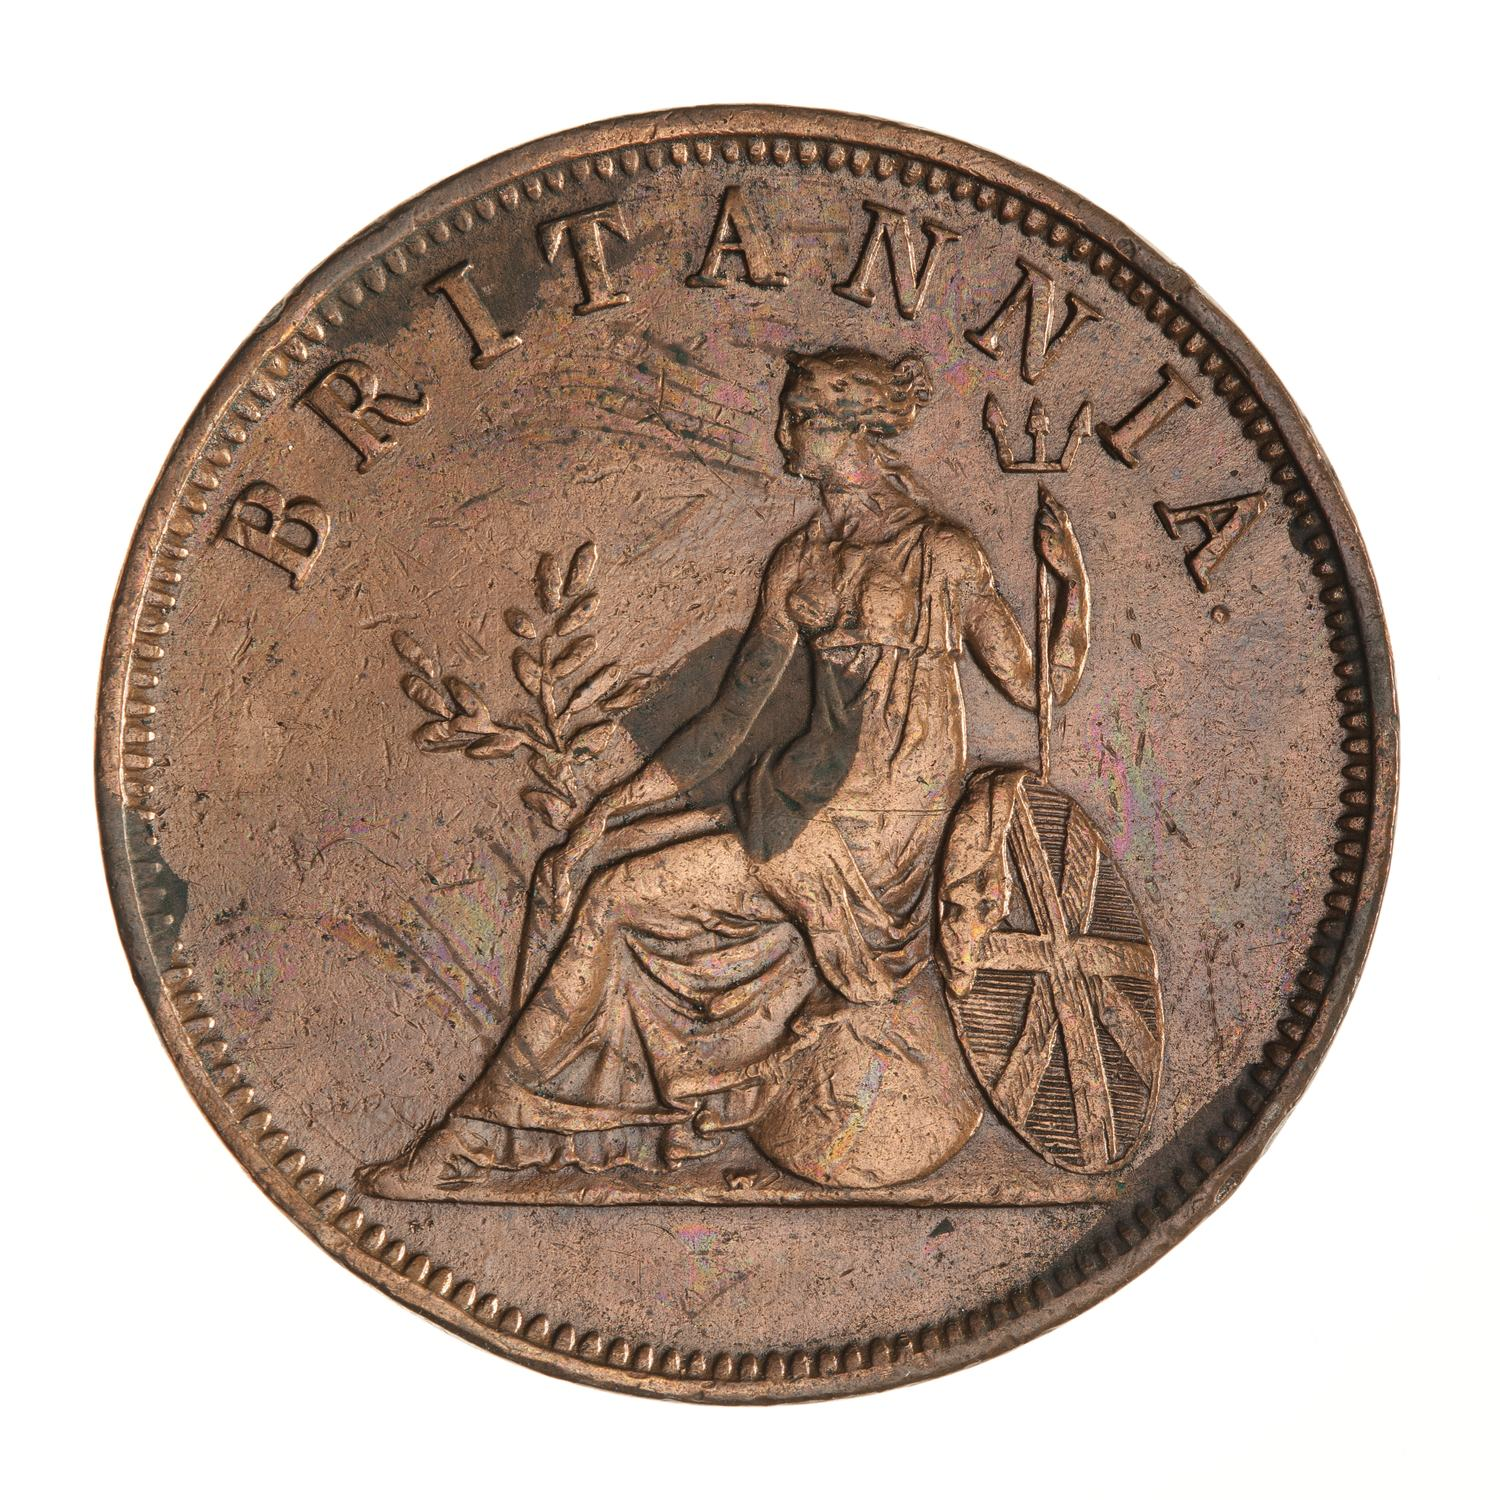 One Obol: Photo Coin - 1 Obol, Ionian Islands, Greece, 1819